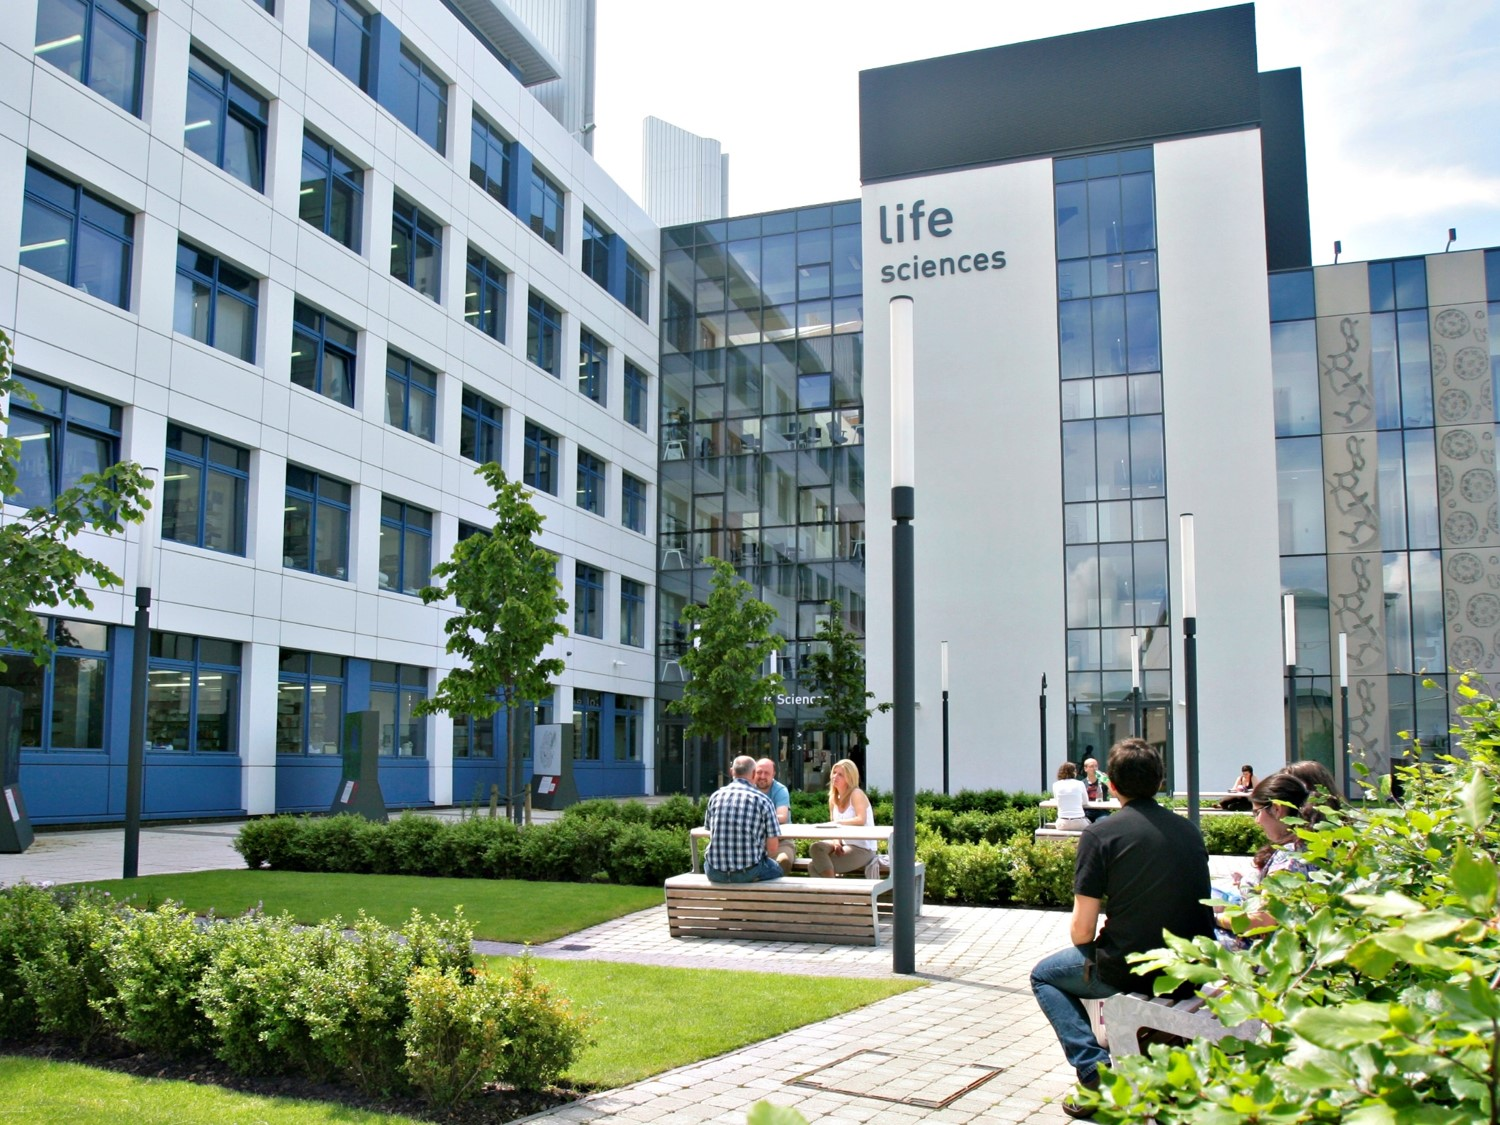 University of Dundee - A credit transfer opportunity for IMU Pharmaceutical Chemistry students.